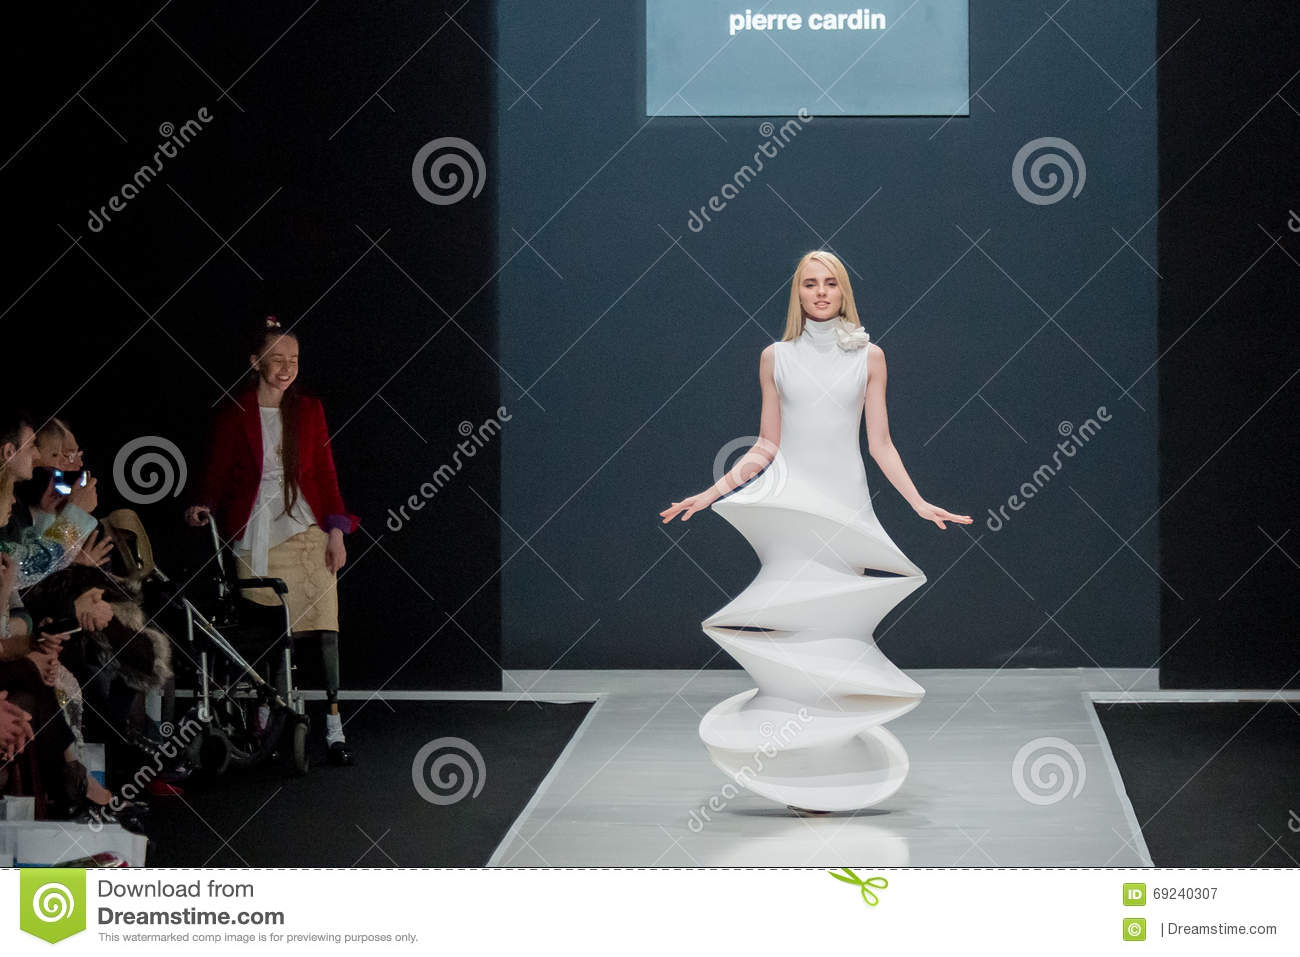 Pierre Cardin will dress the Moscow actors 10/29/2009 18